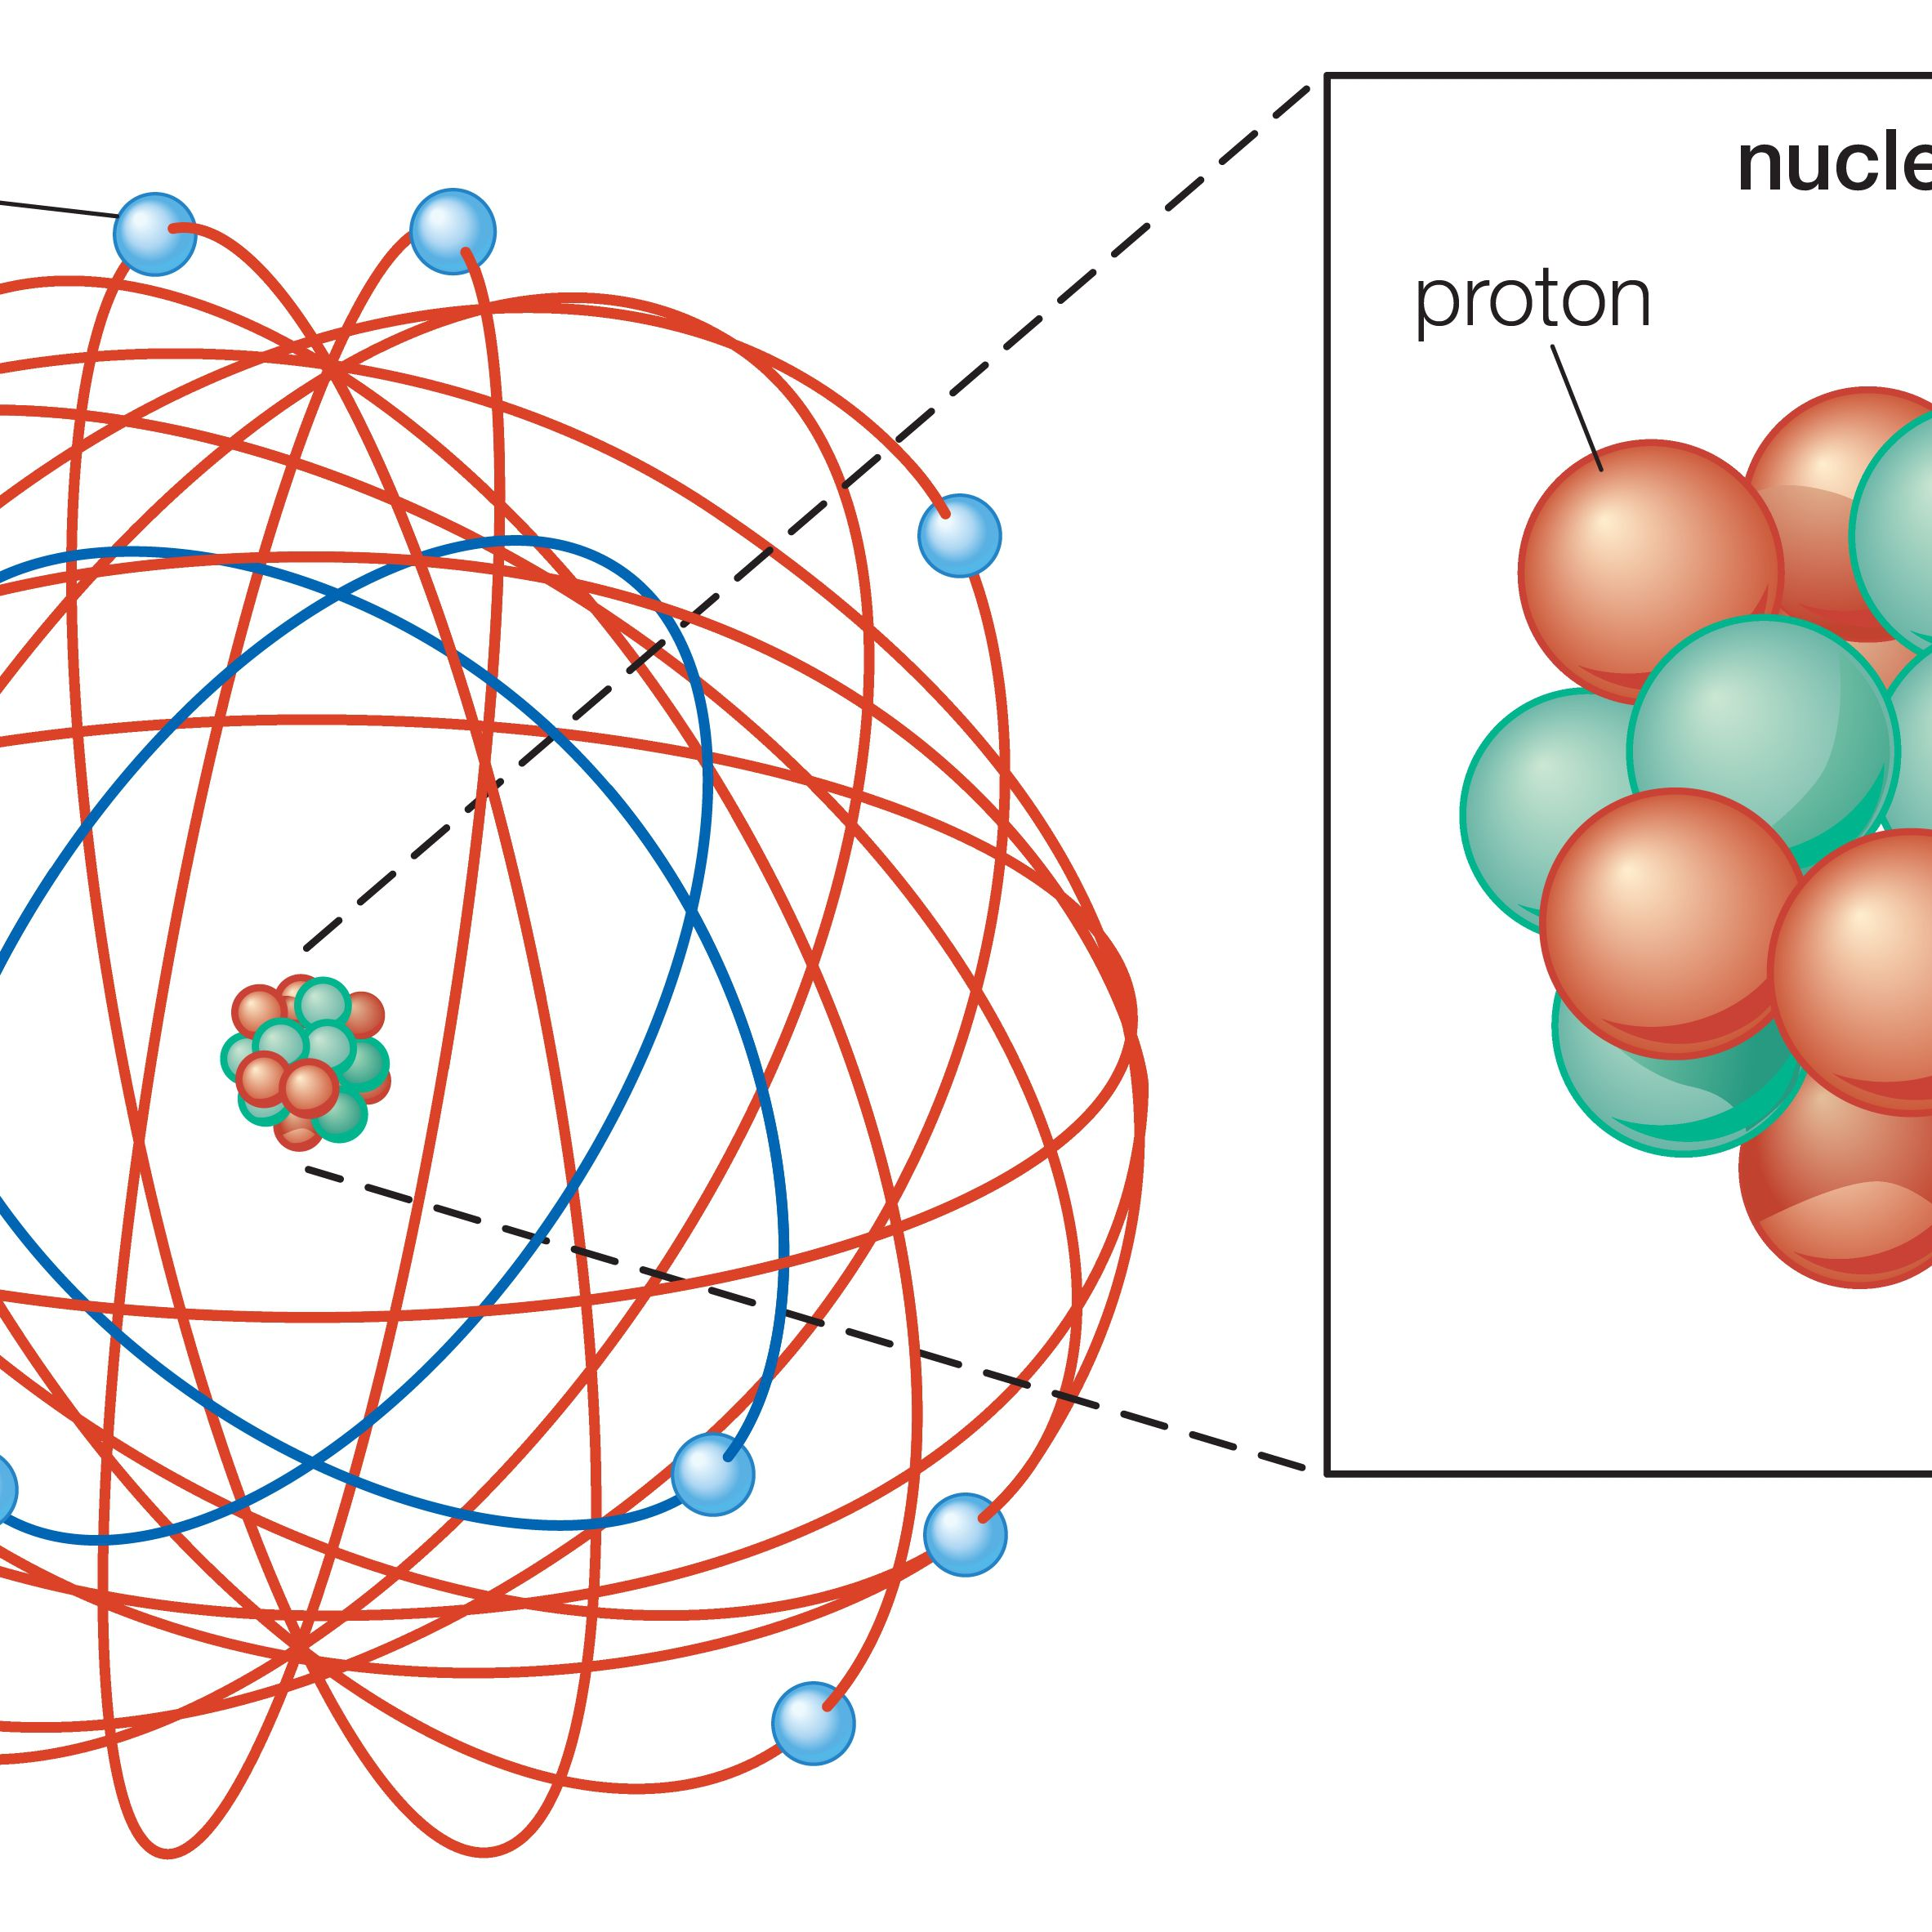 What Information About The Subatomic Makeup Of An Atom Is